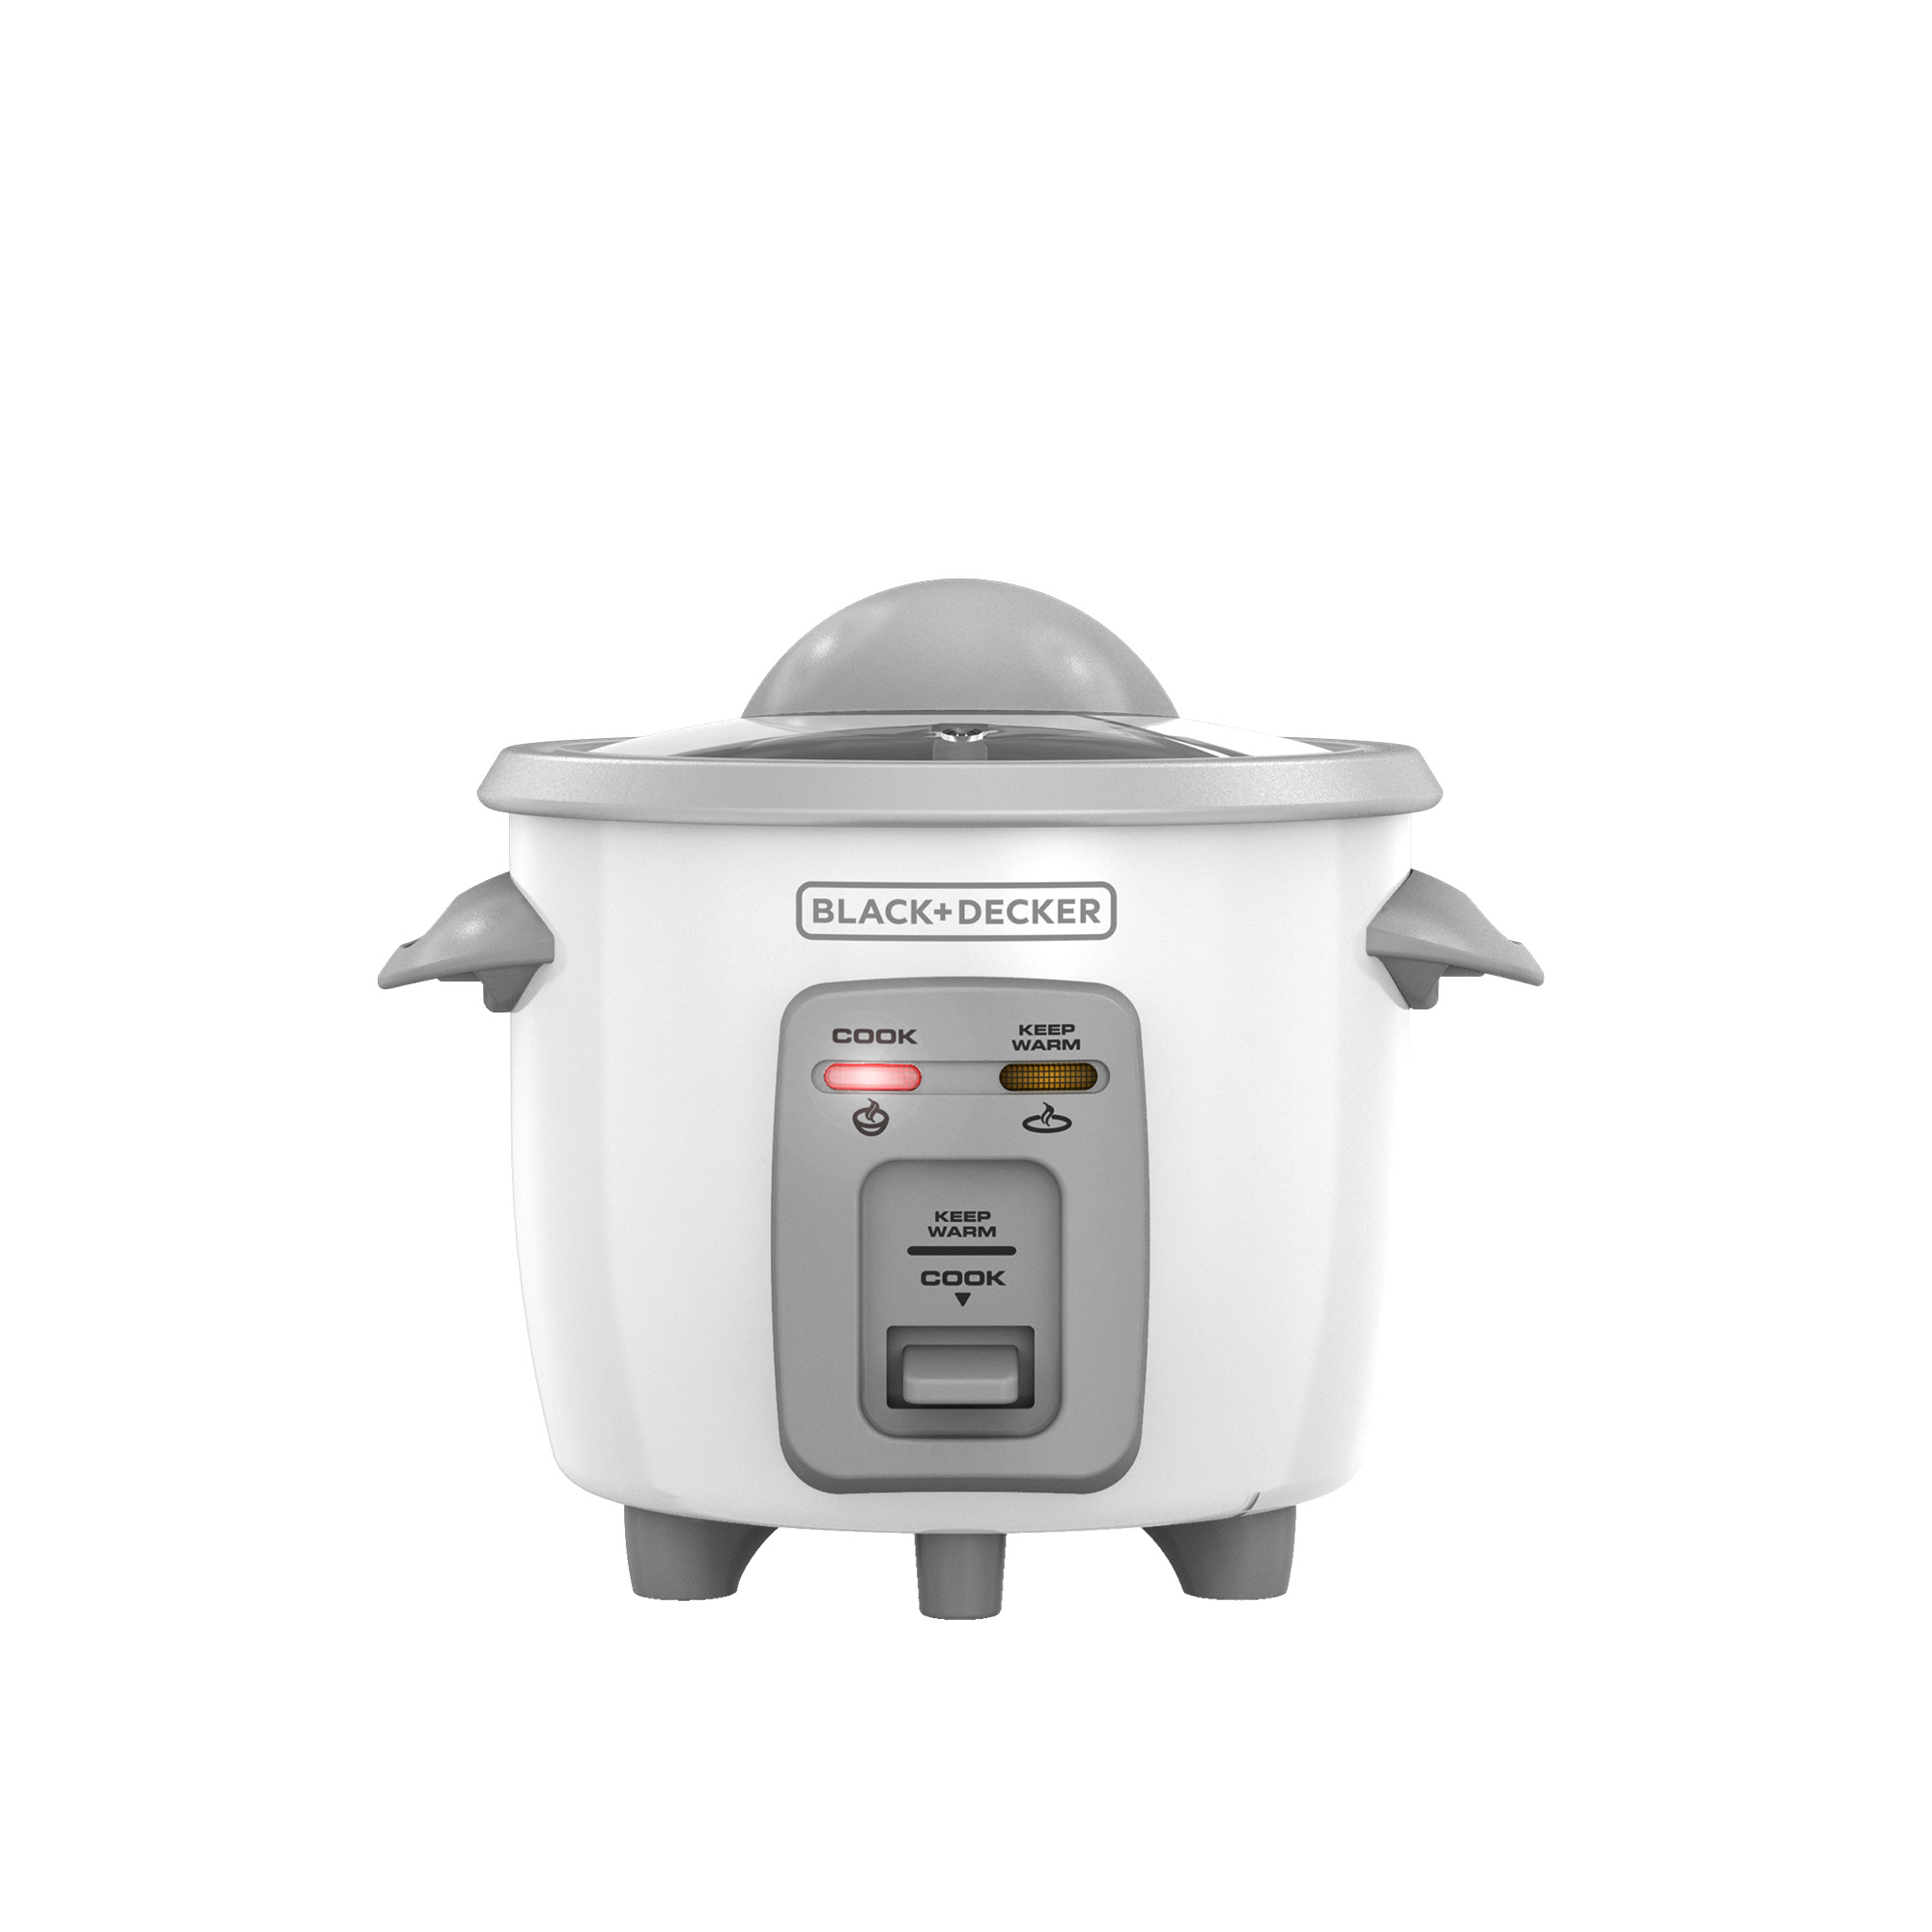 RC3303 BLACK+DECKER 3-Cup Rice Cooker